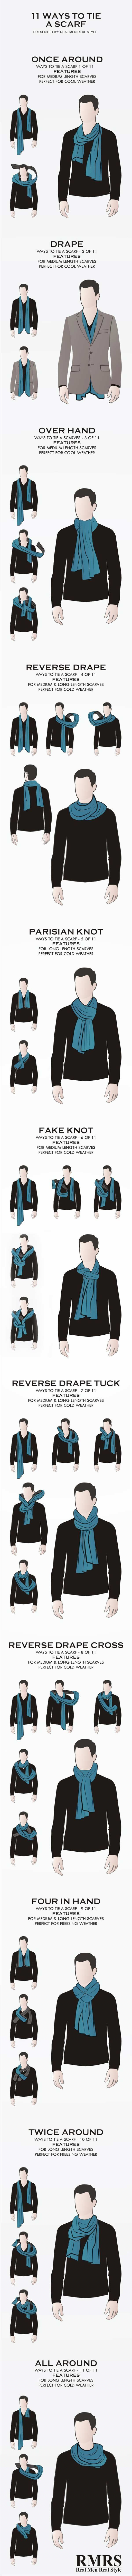 11 ways to tie mans scarf infographic RMRS Great info from Business Insider